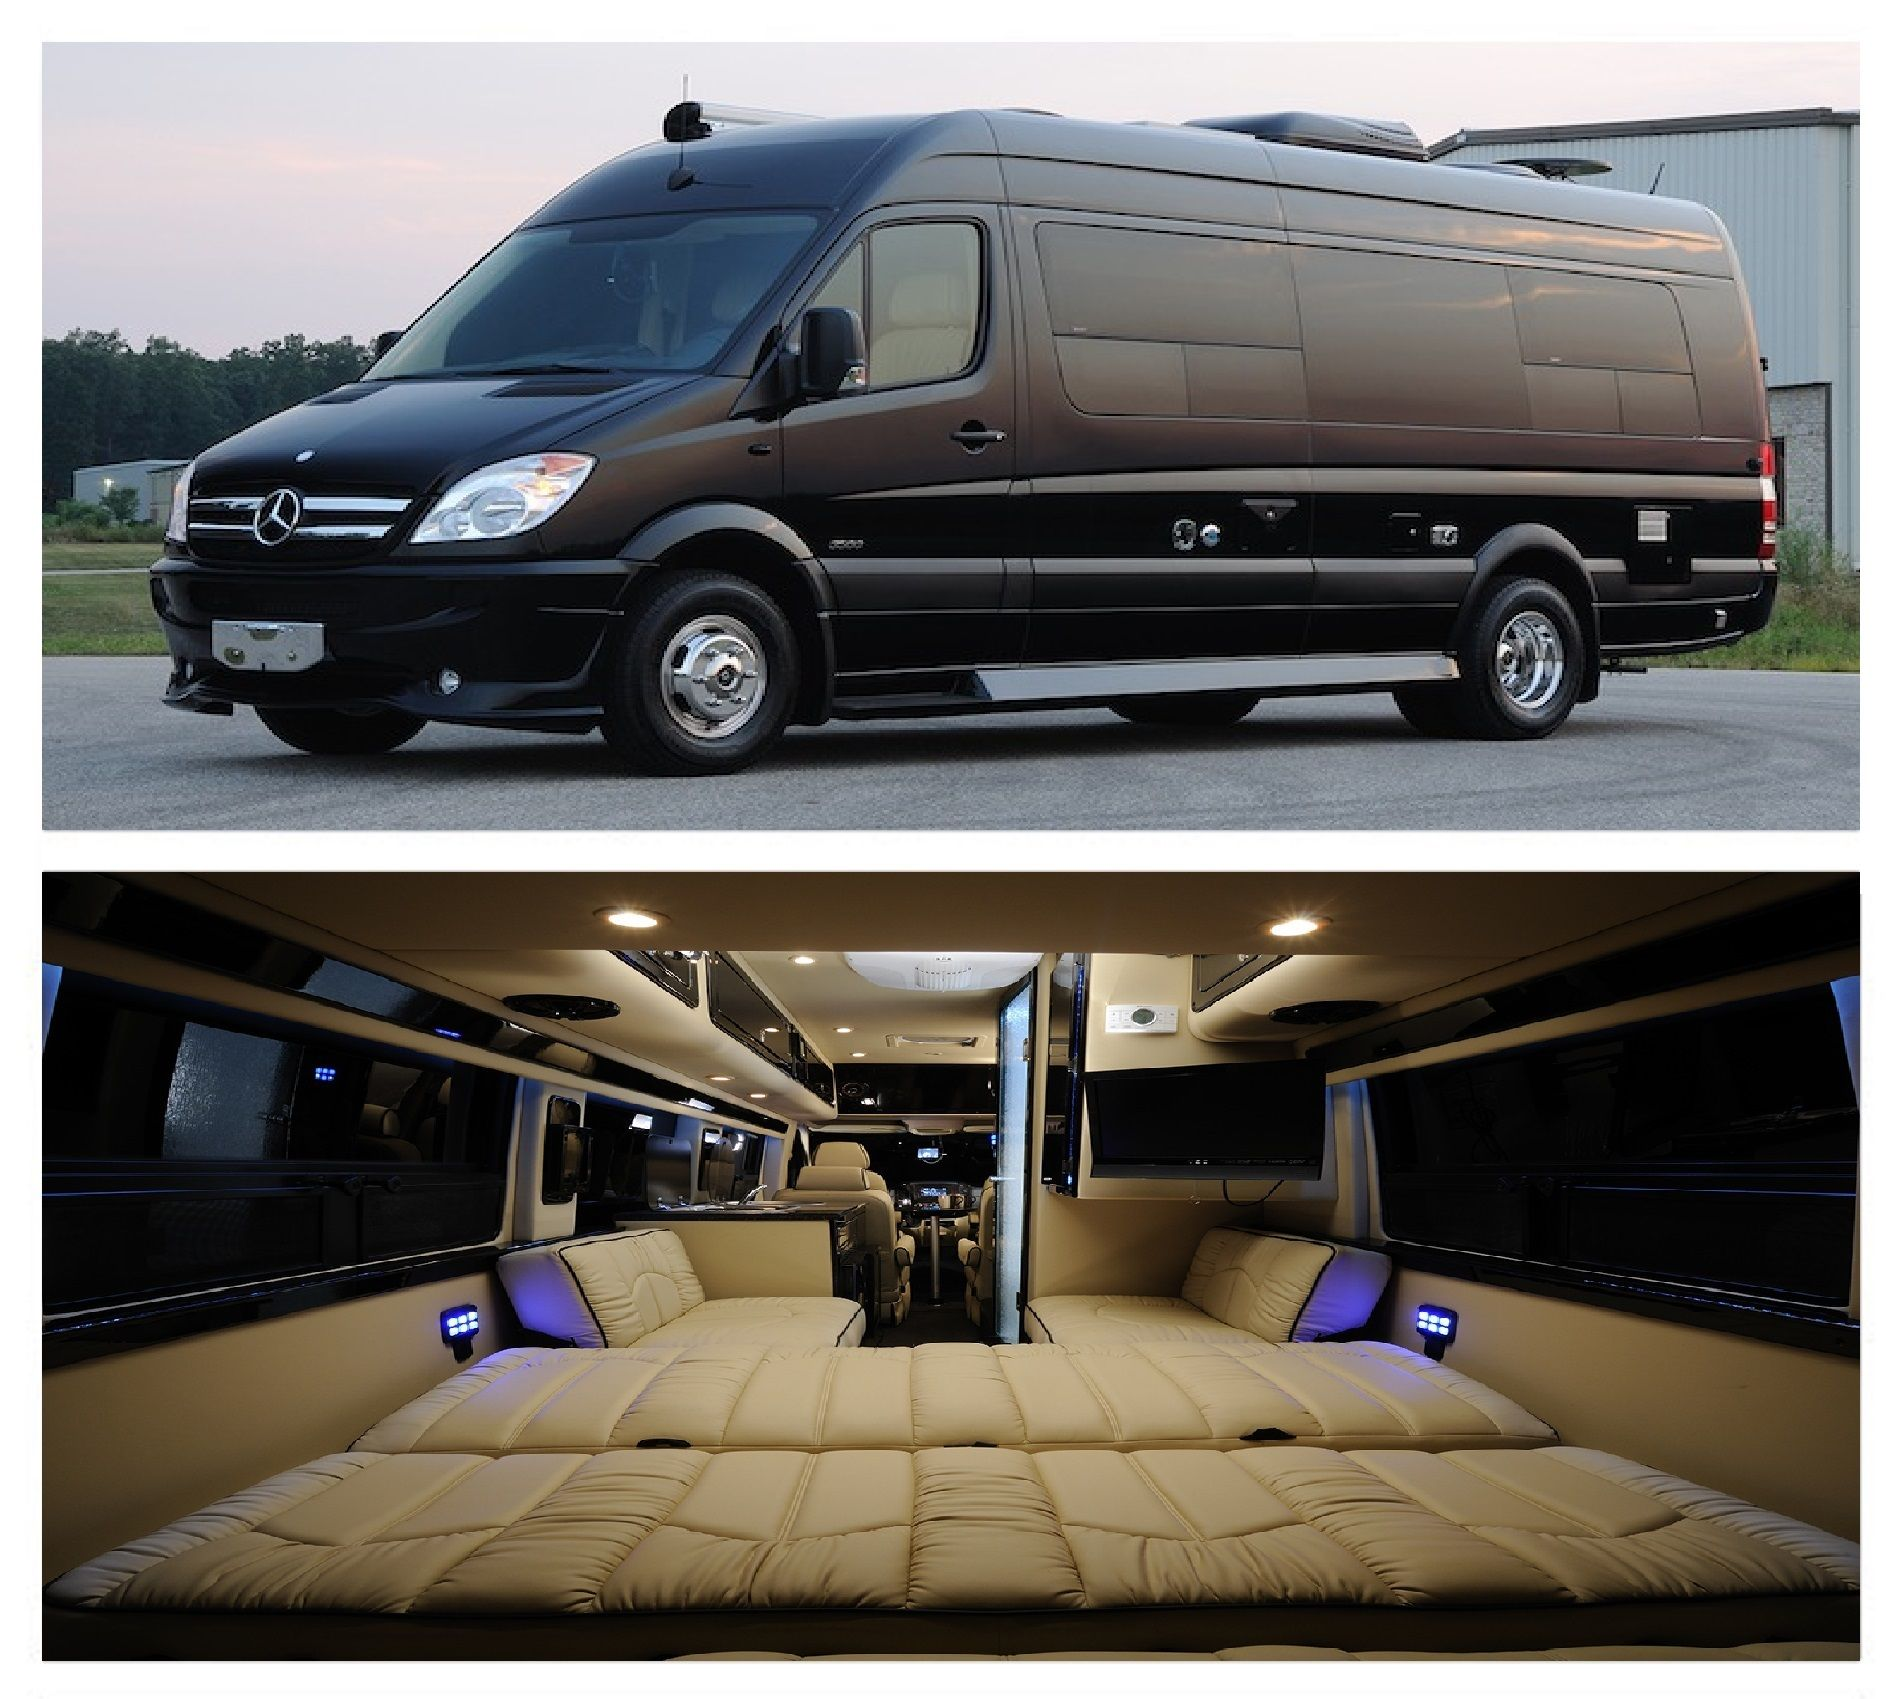 Weekender mercedes benz sprinter rv camper van http midwestautomotivedesigns com